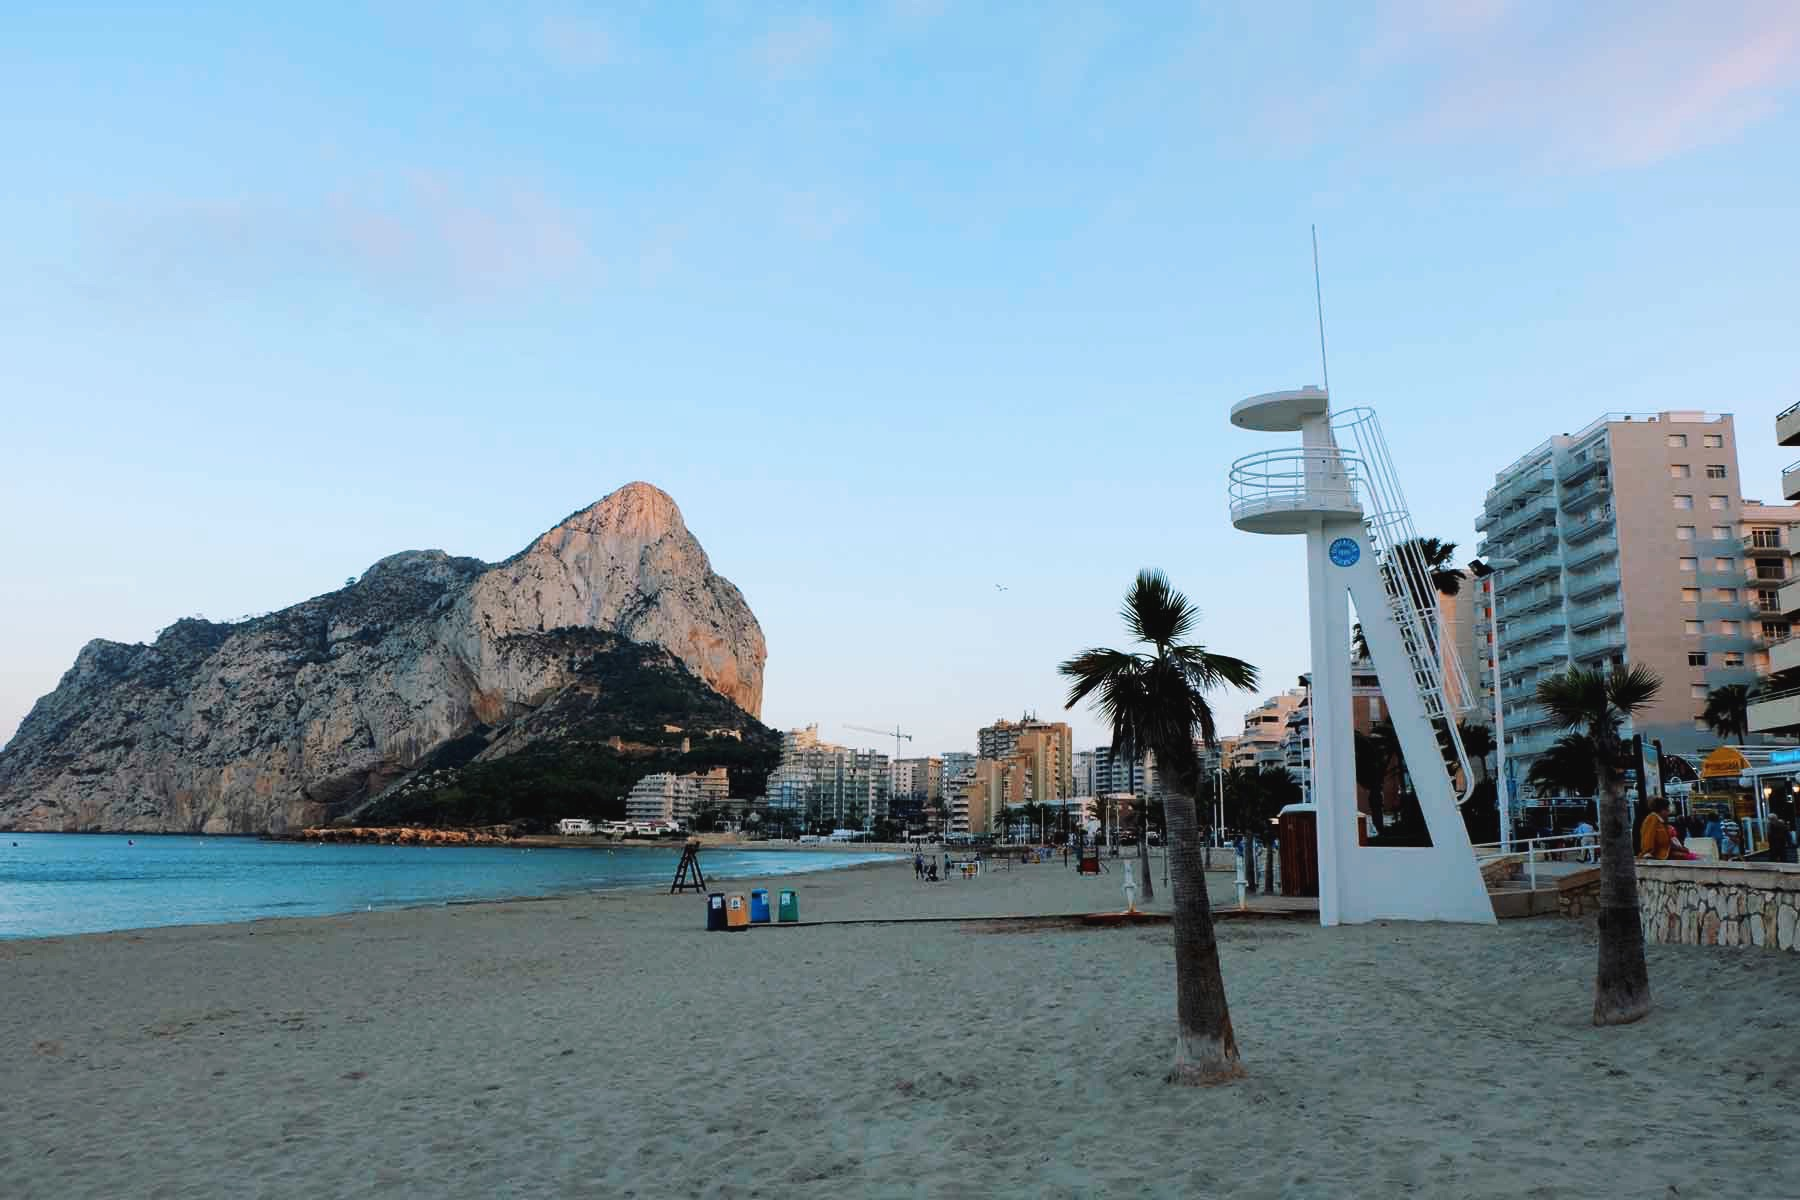 A postcard. From Calp, with love.